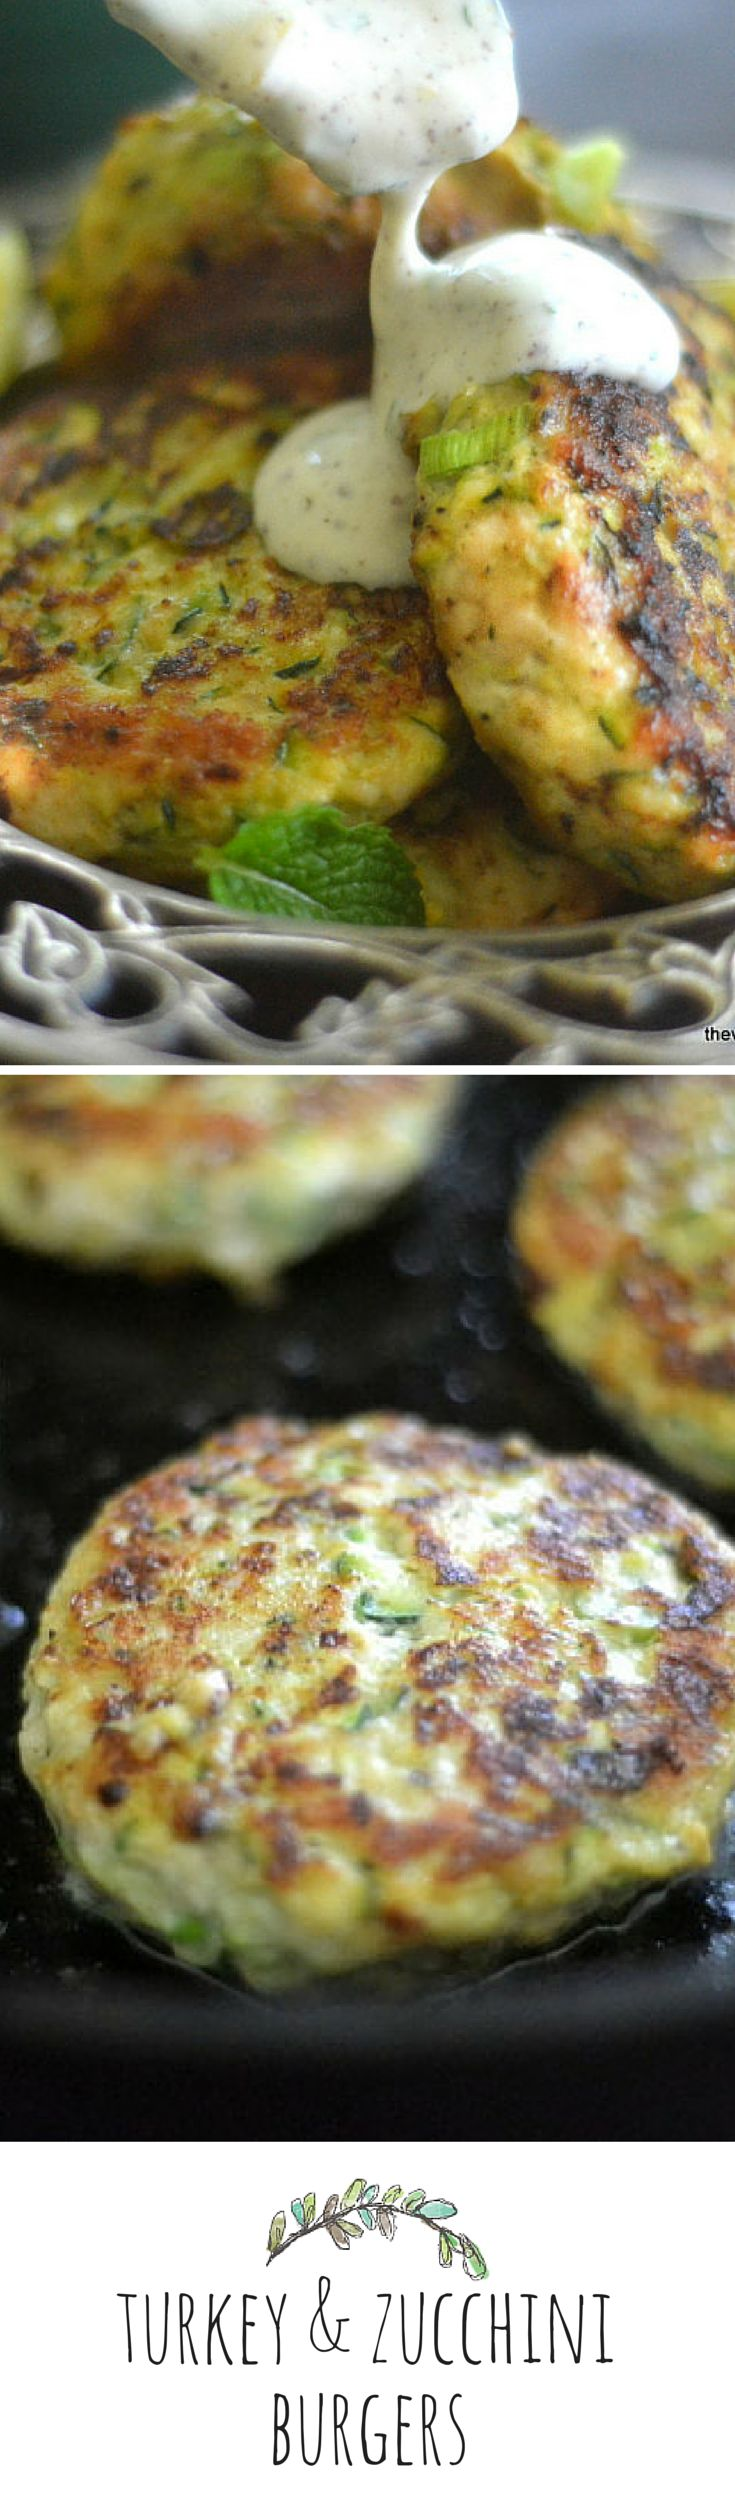 These unusual burgers have amazing flavor!